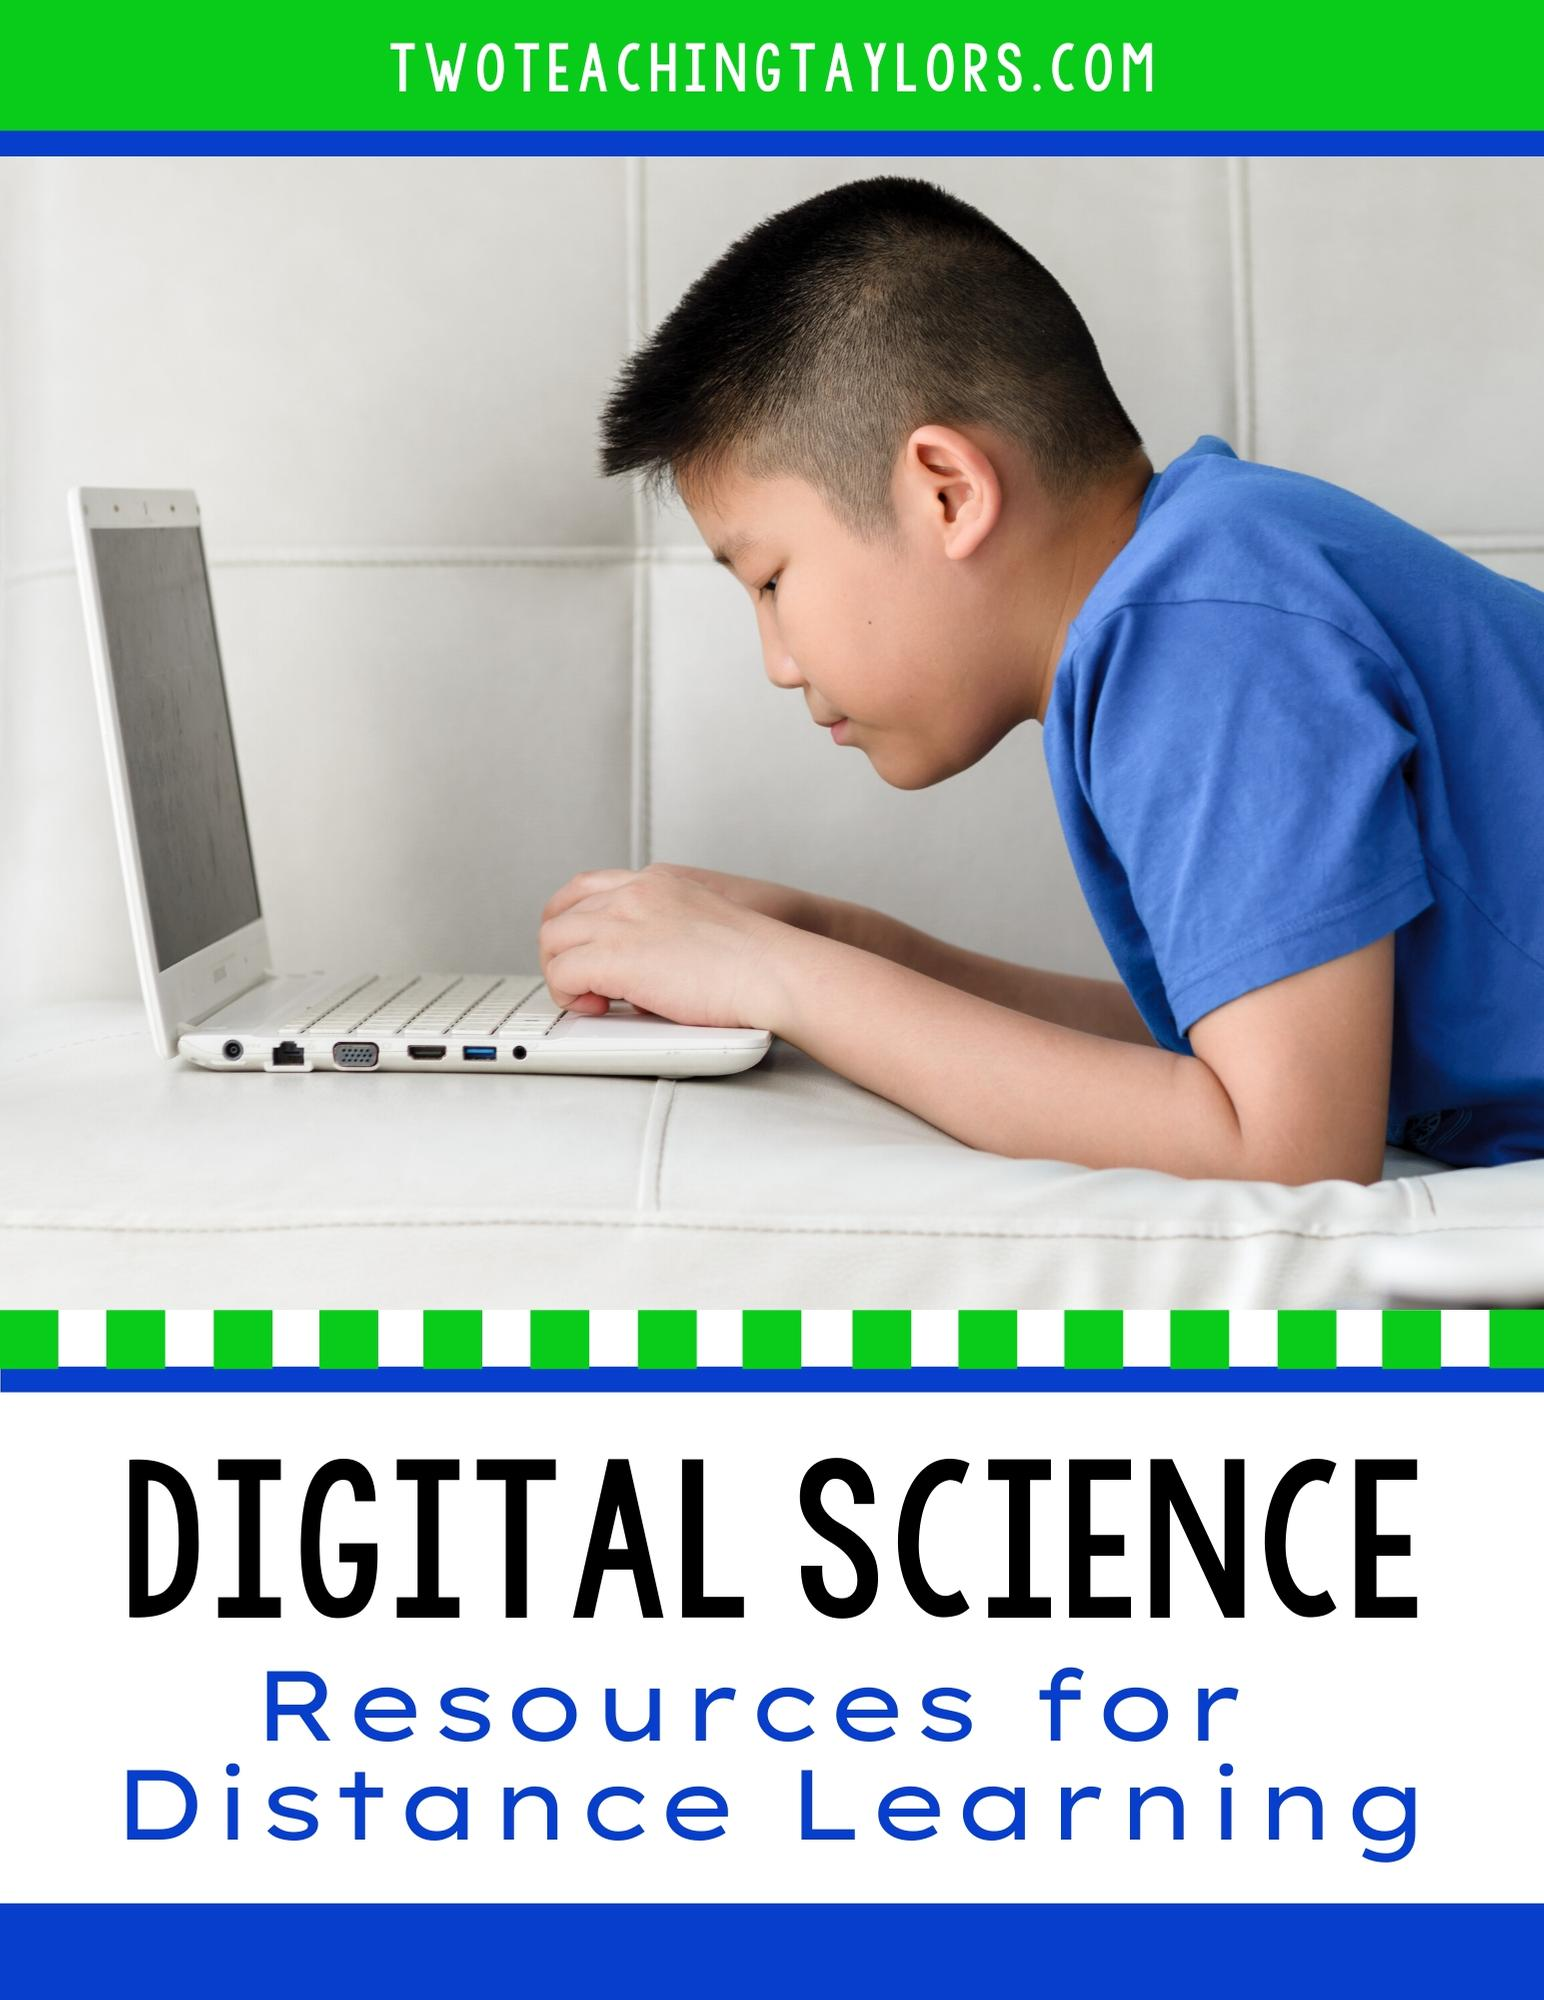 Digital Science Resources FEATURE photo